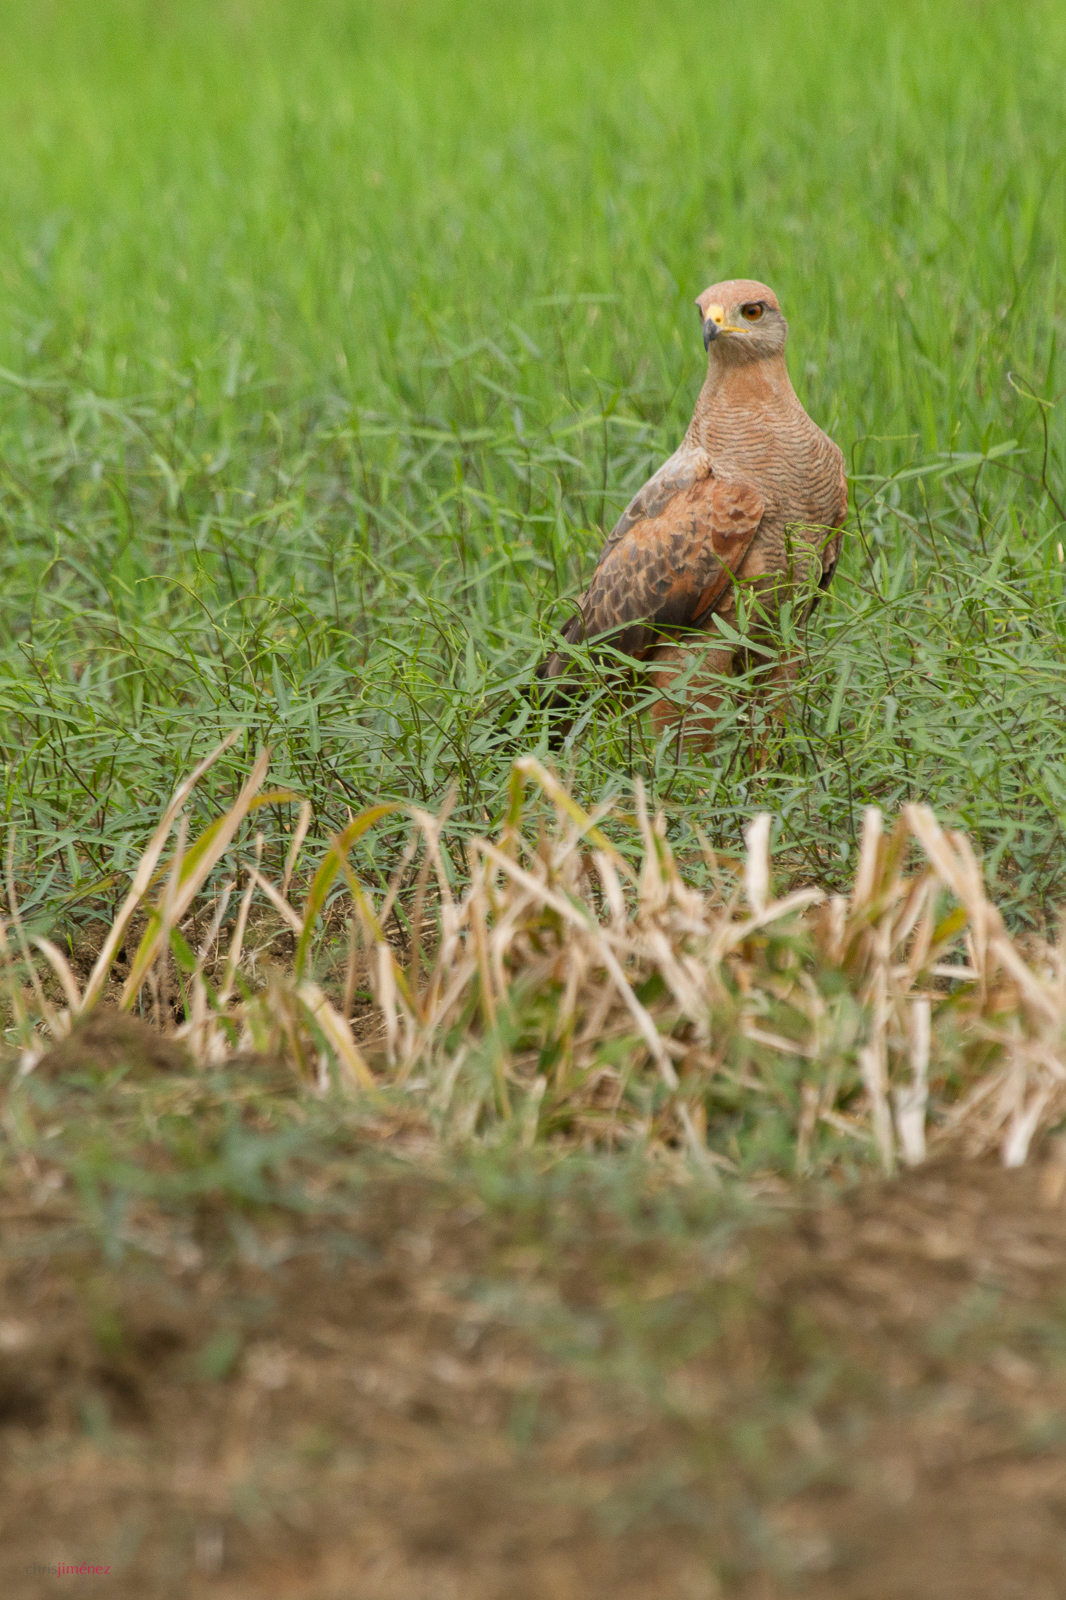 Savanna Hawk (Buteogallus meridionalis) perched on the ground at the low lands of Costa Rica